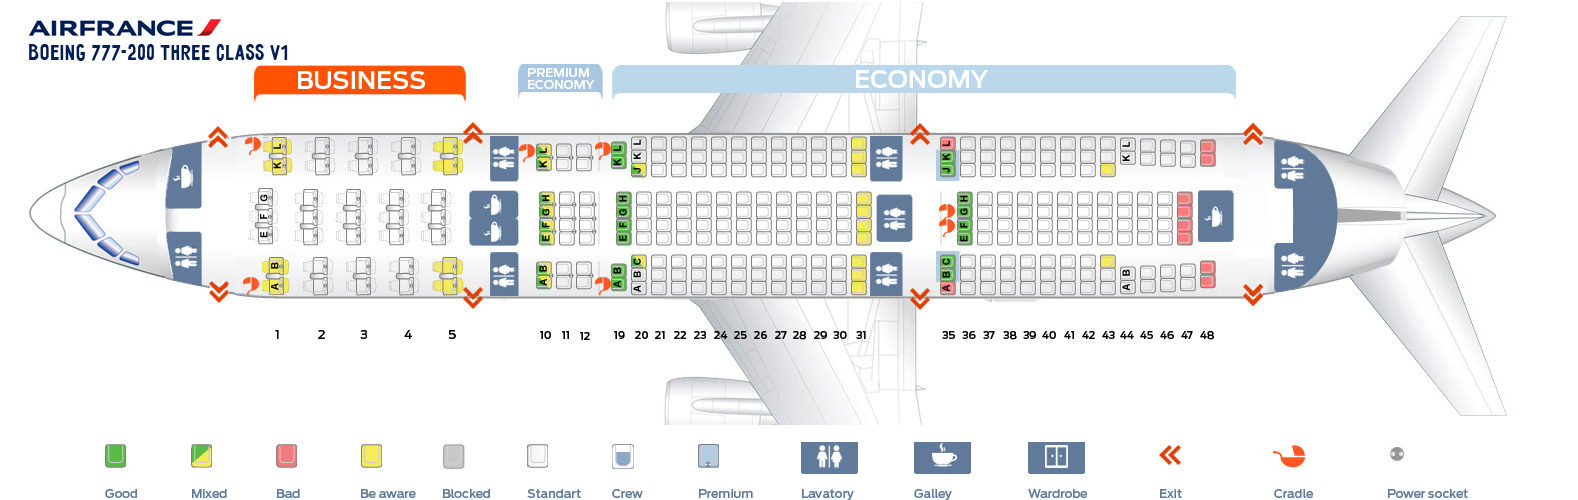 Seat Map Boeing 777-200 Three Class V1 Air France